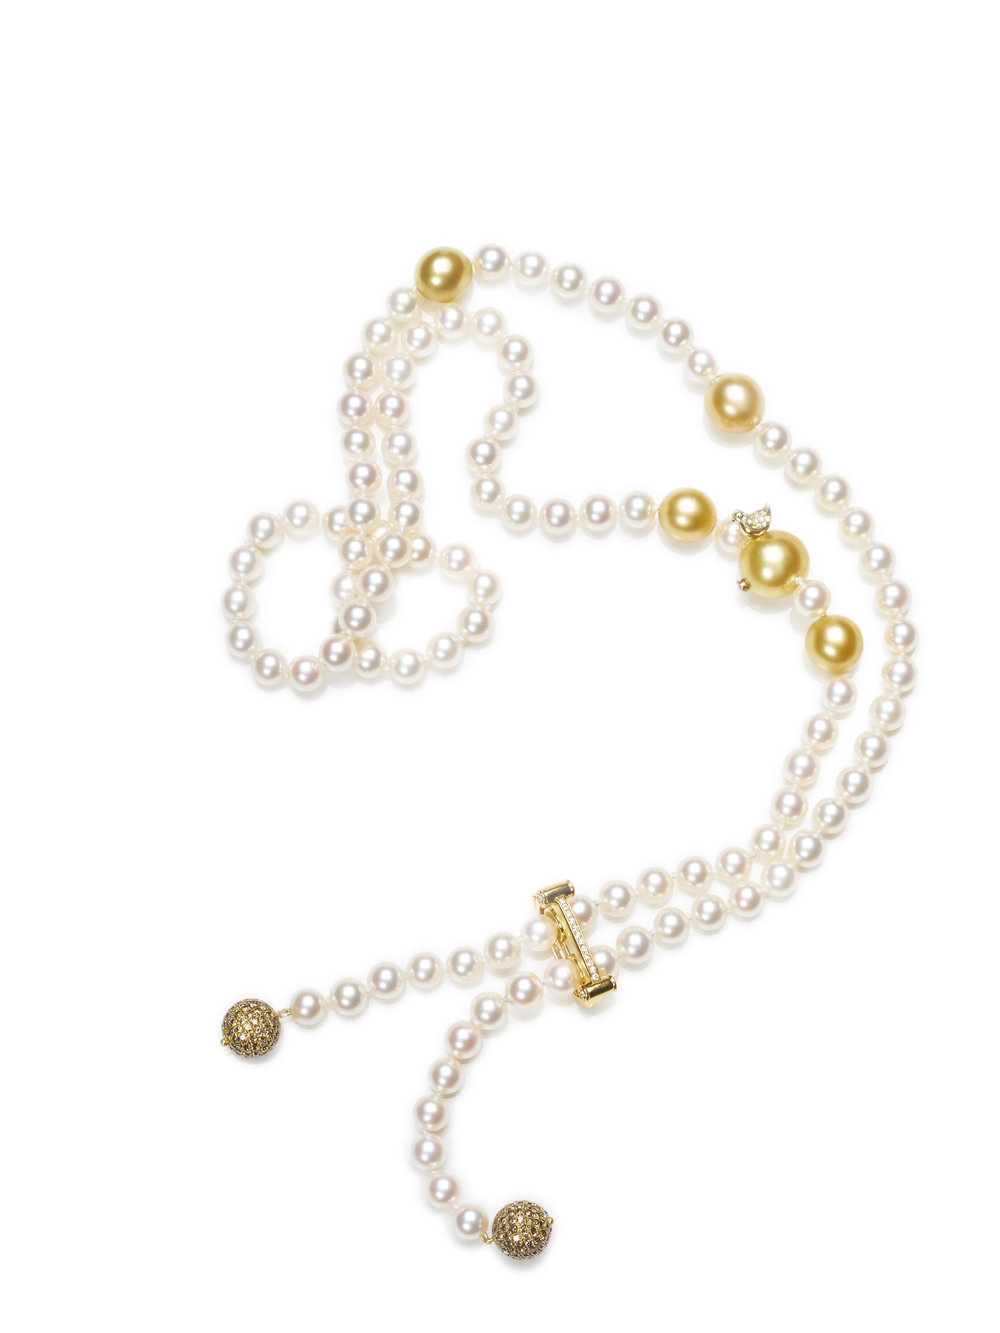 MARILYN NECKLACE   SOUTH SEA PEARLS 4.26 CT OF DIAMONDS      PEARL CLASP    18 K GOLD .2 CT OF DIAMONDS      Contact for inquiry